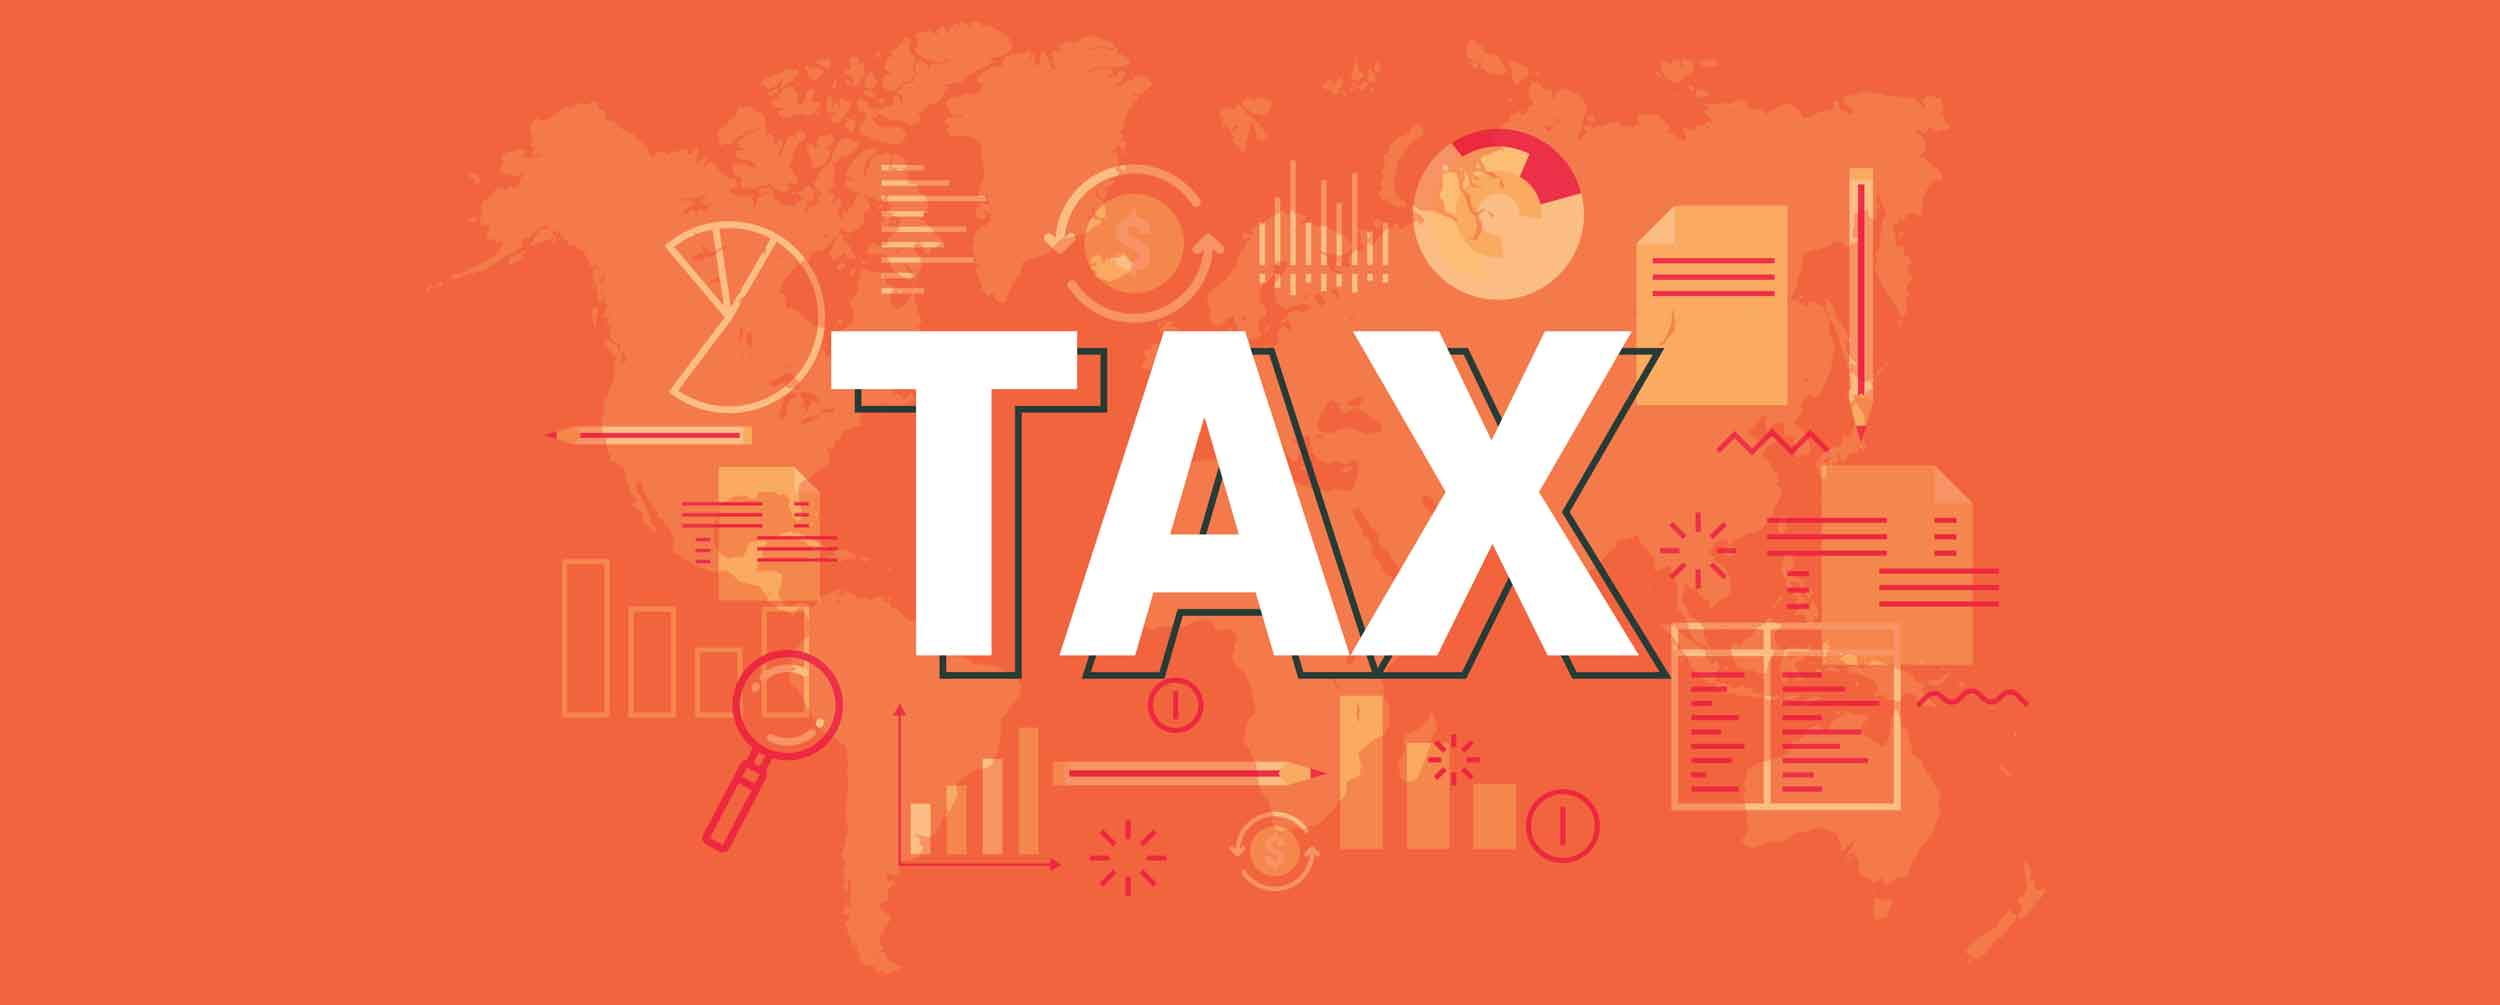 Mobile image Orange graphic with the word Tax in white with financial icons in the background